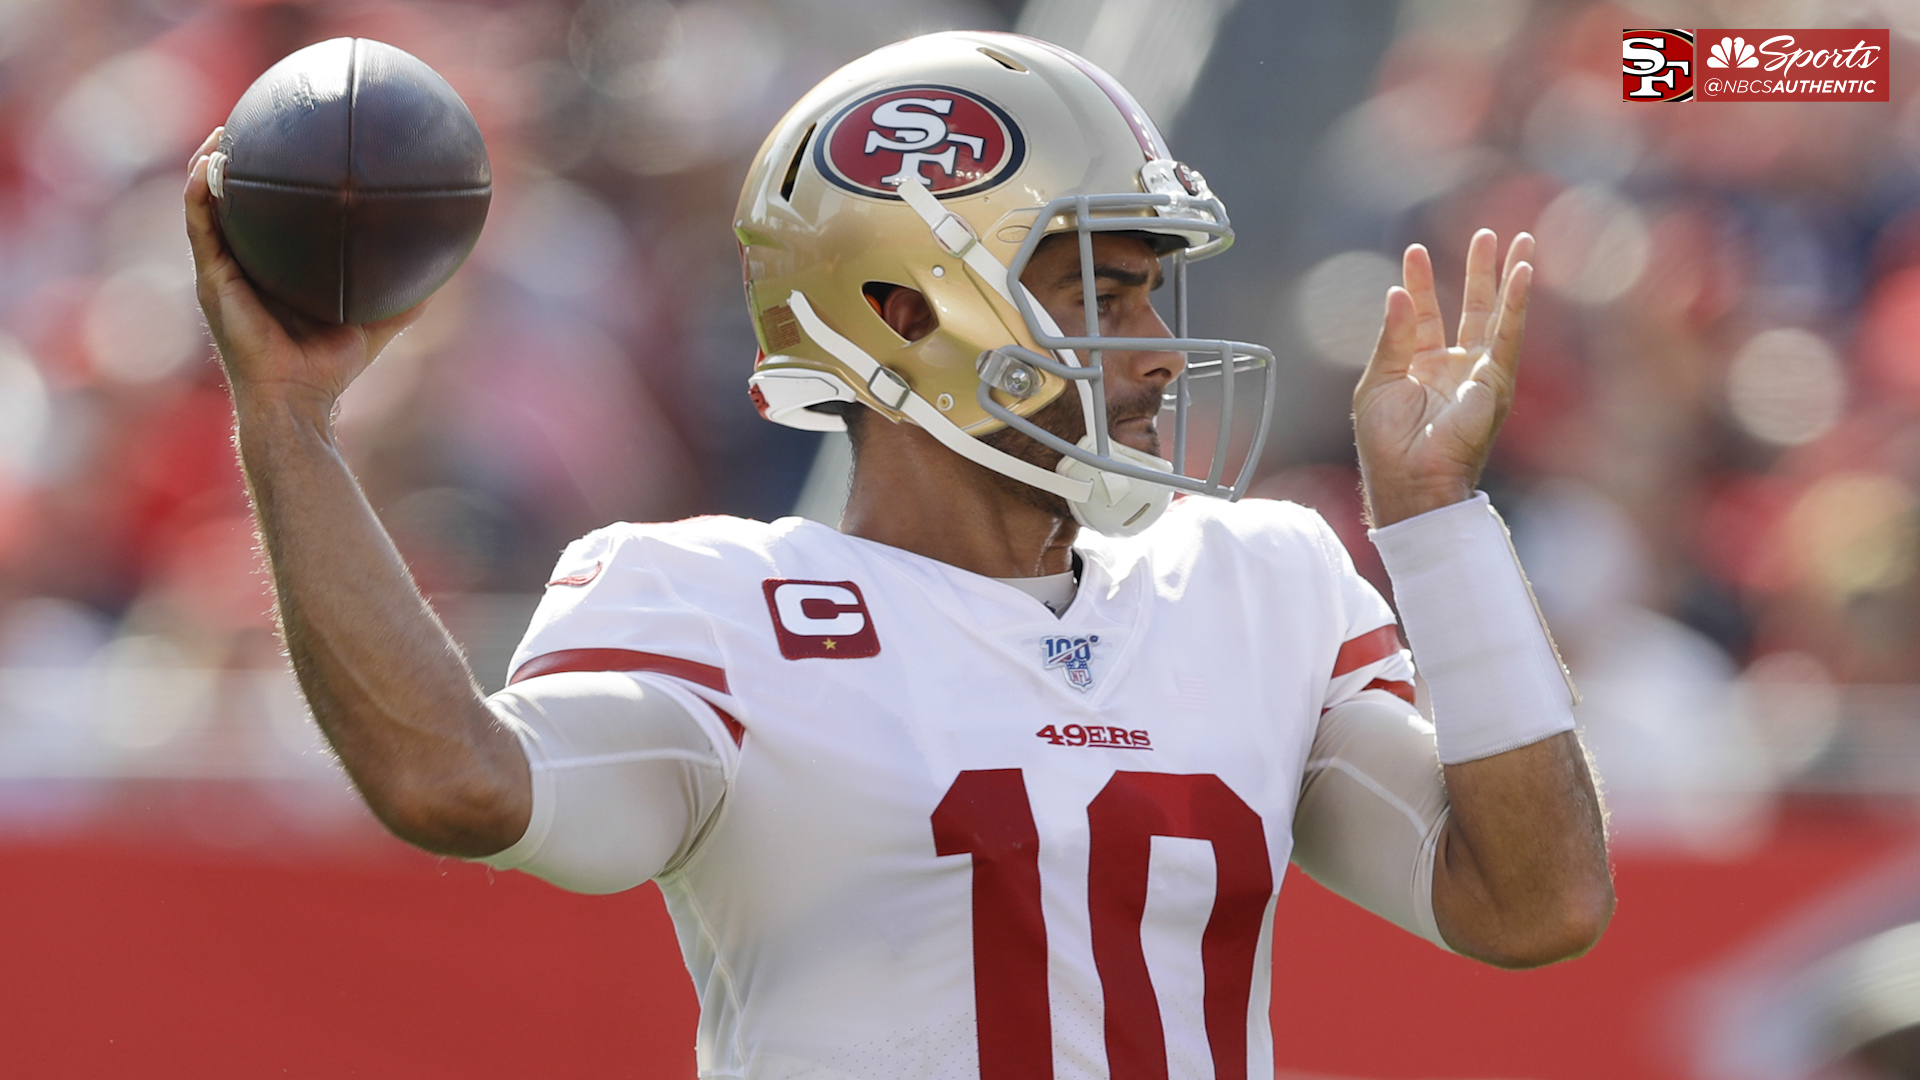 Kyle Shanahan details how Jimmy Garoppolo handled ups and downs of